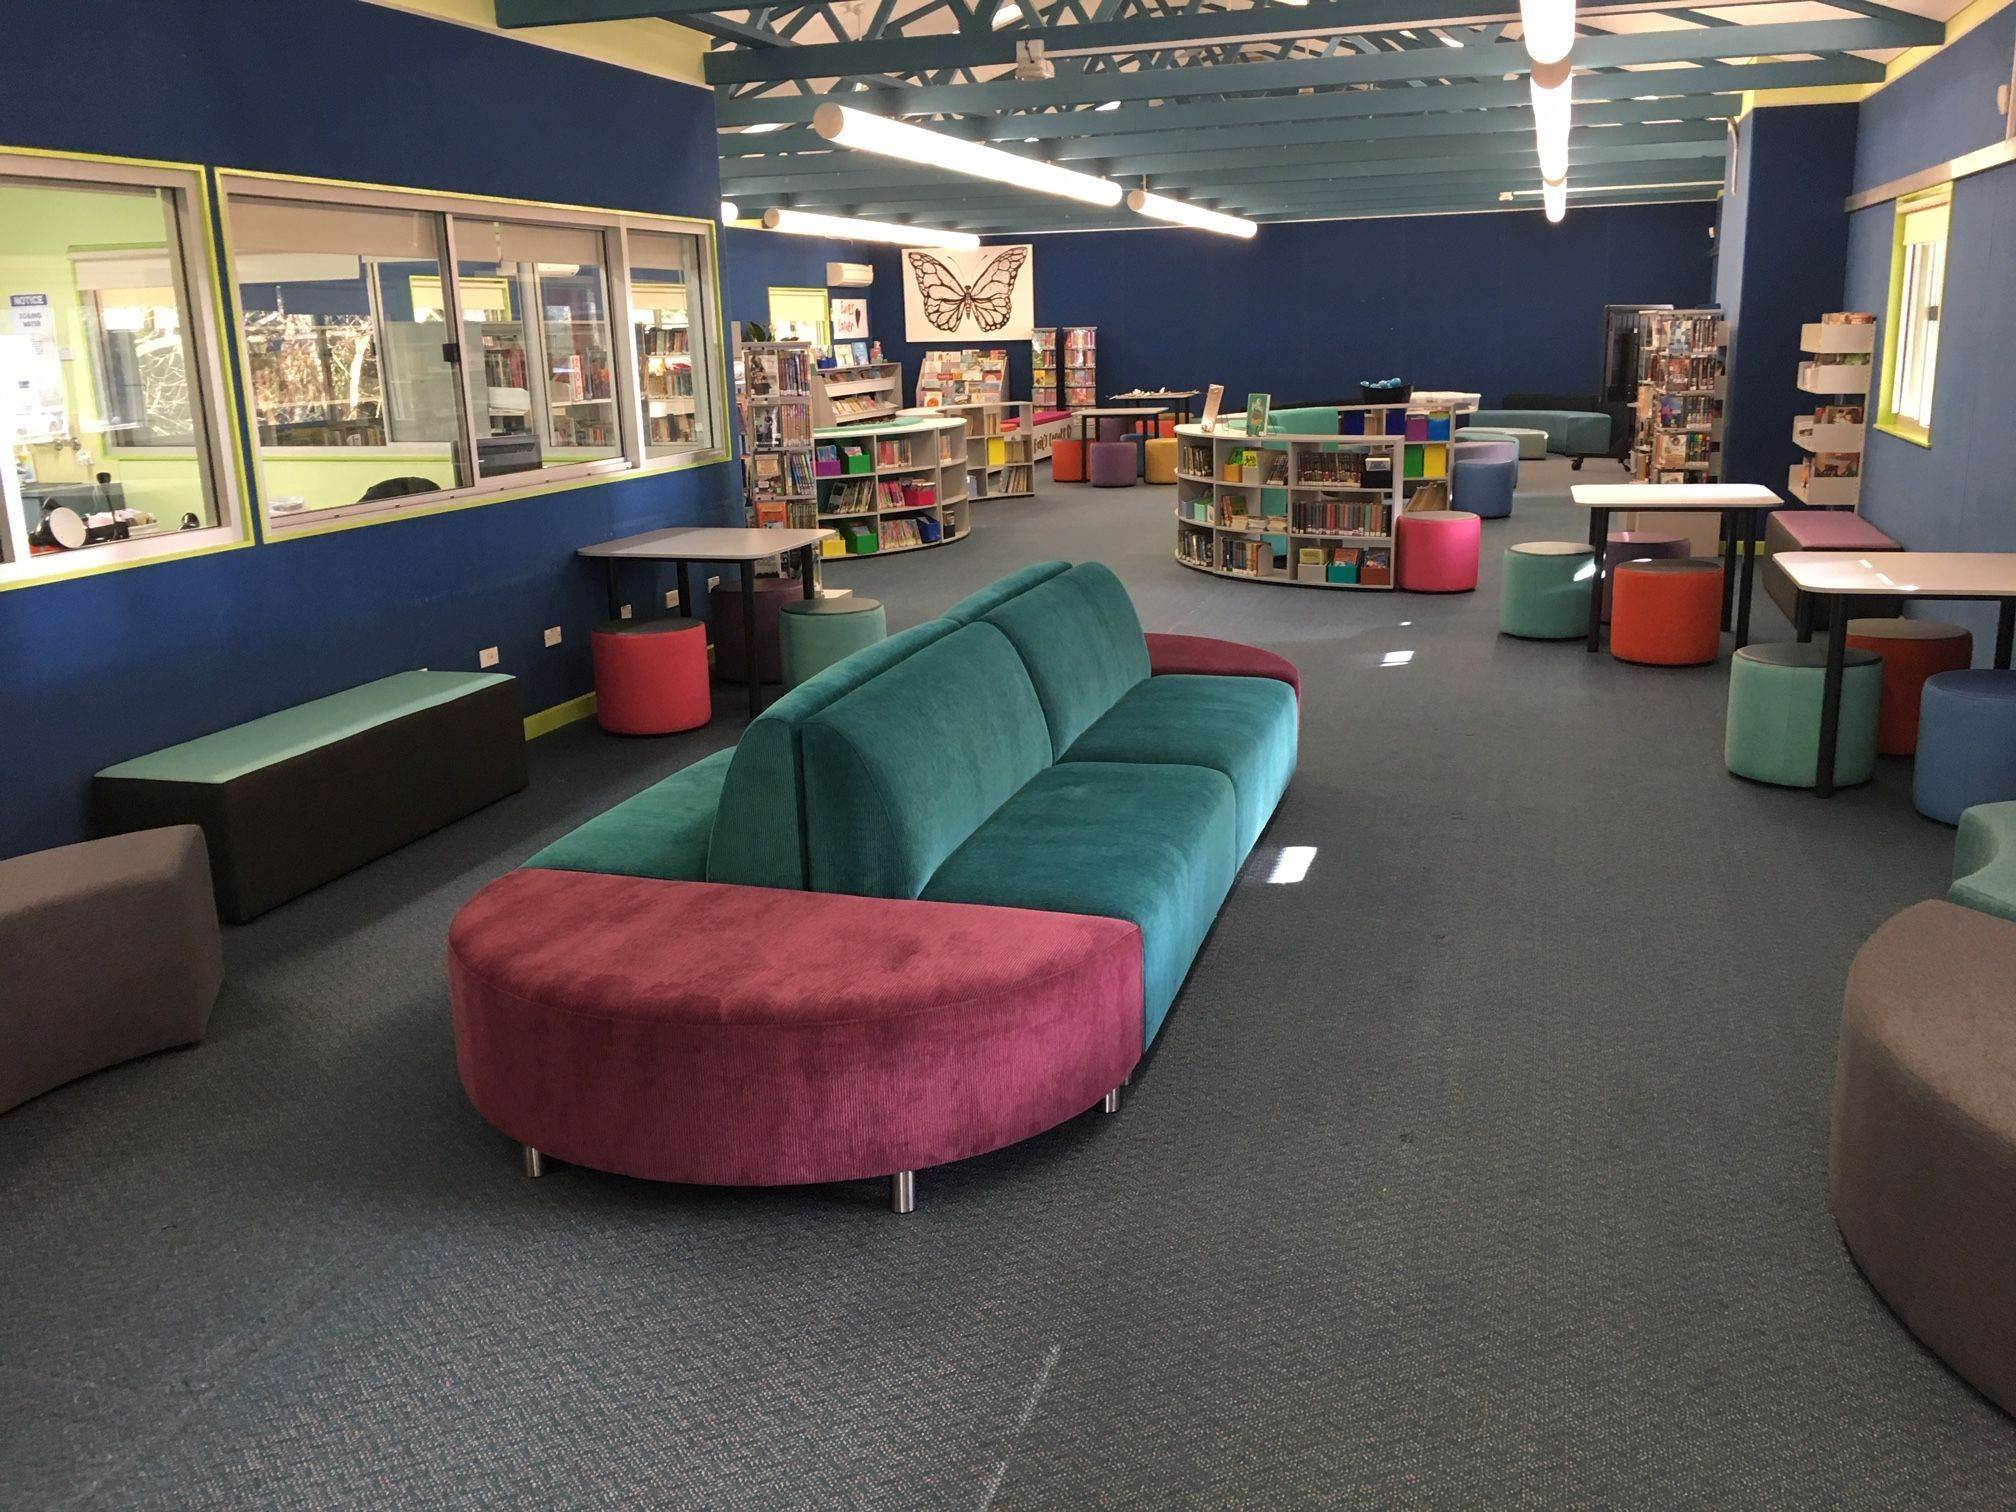 library space withBella lounges, tables and bookcases